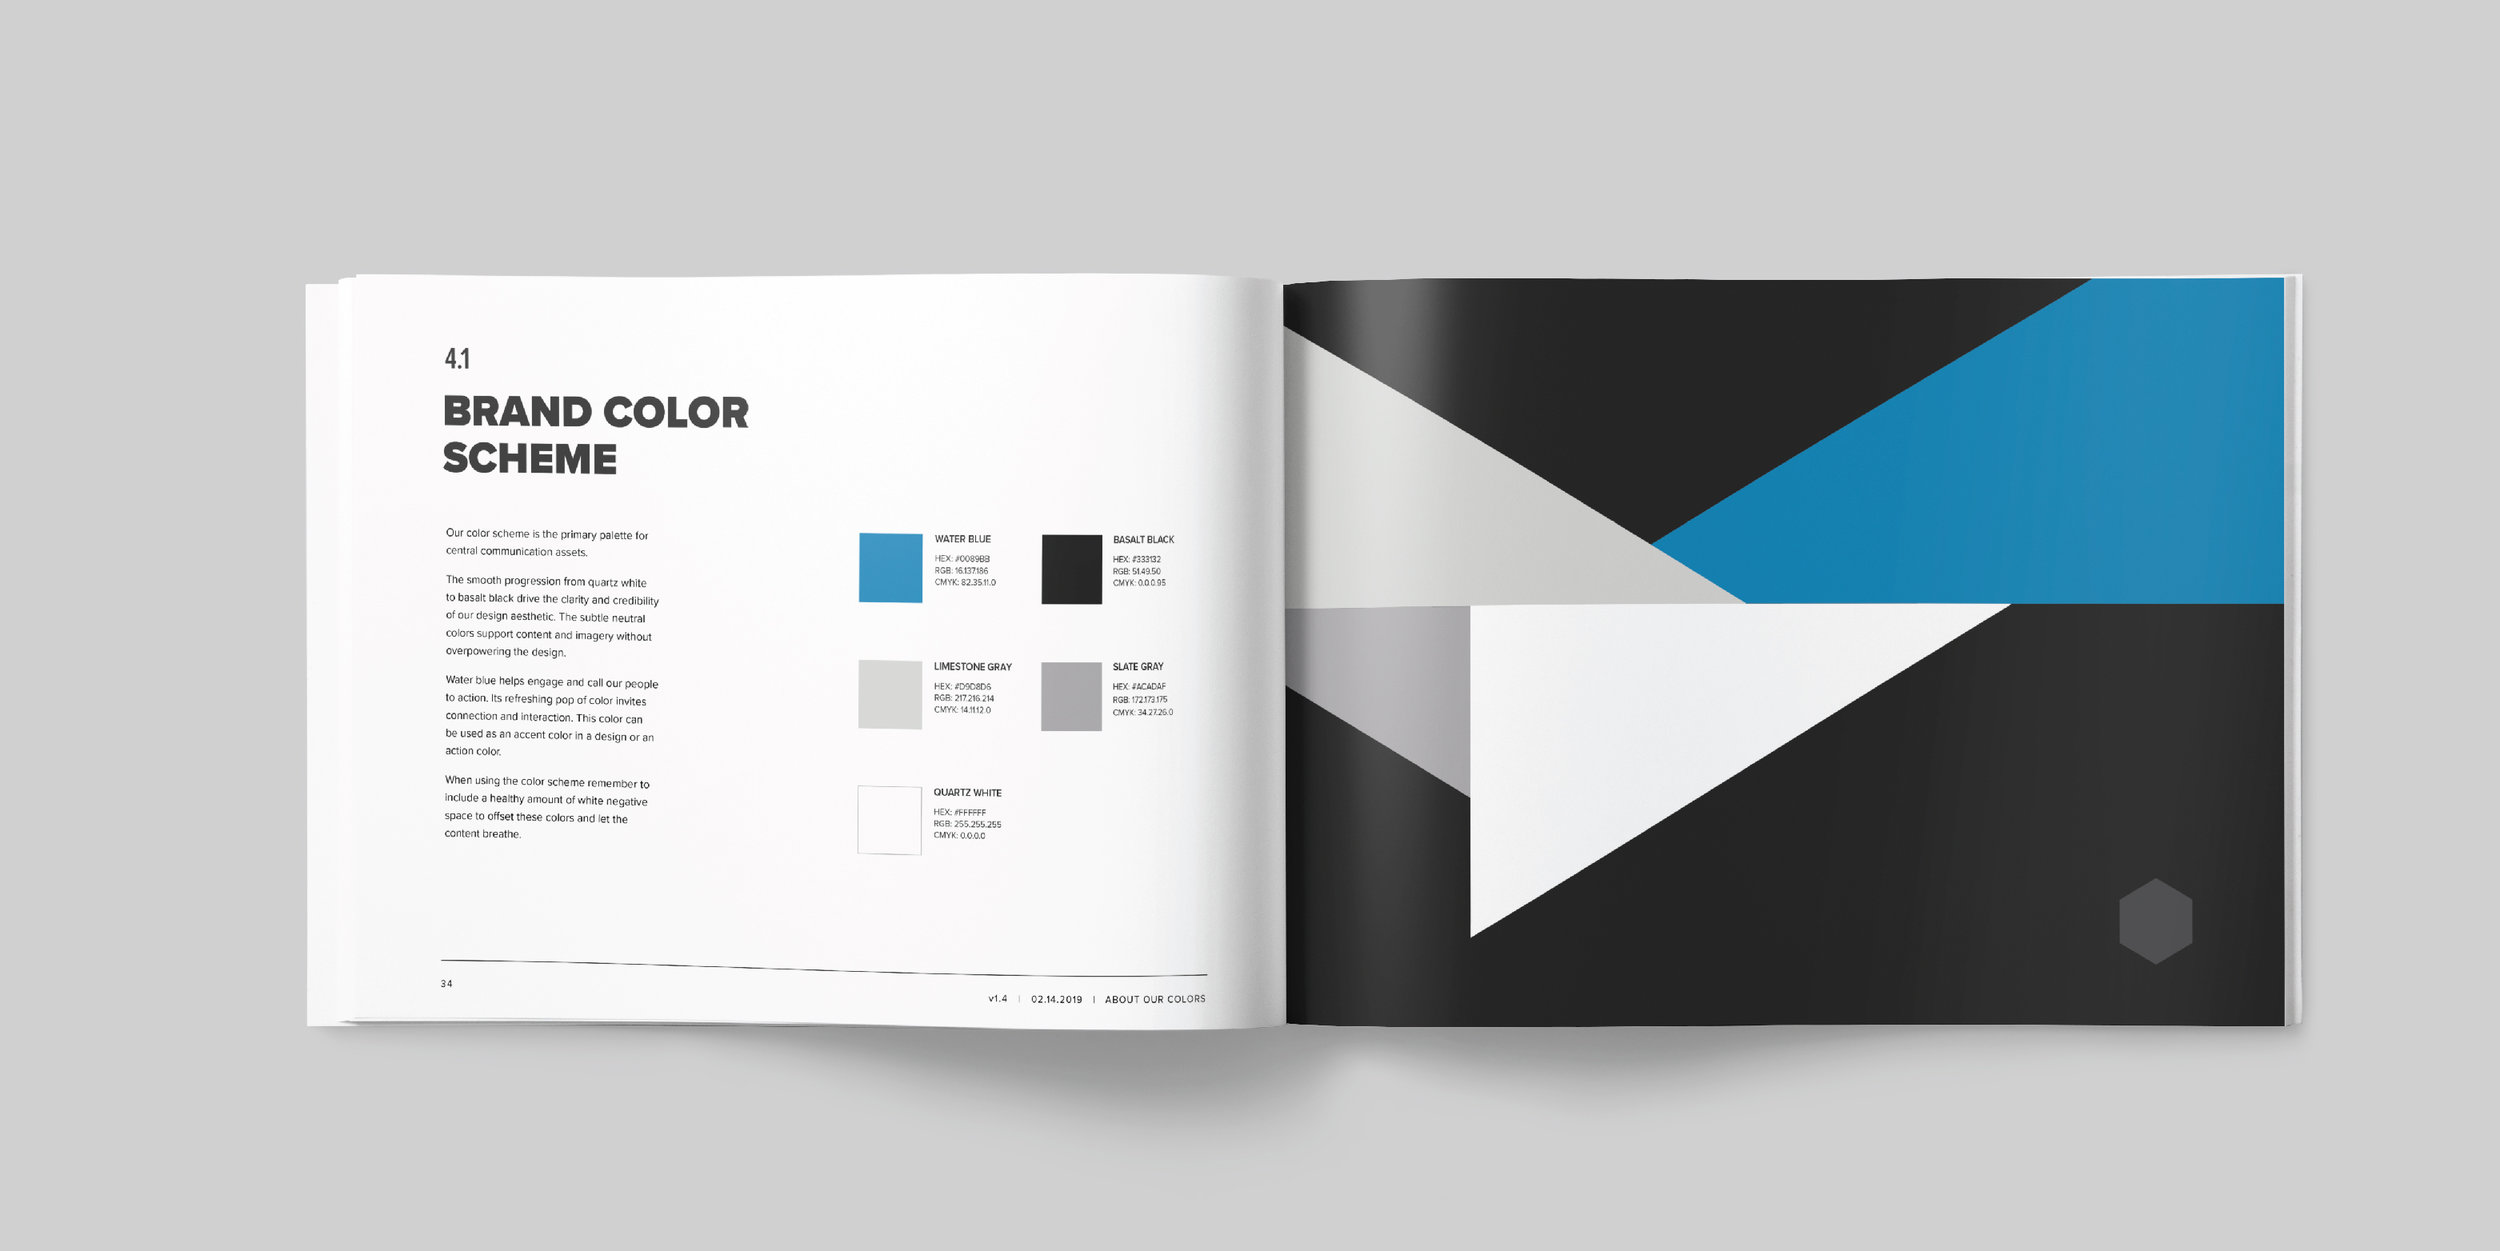 ASCC-Rebrand-Case-Study-Images-11.jpg